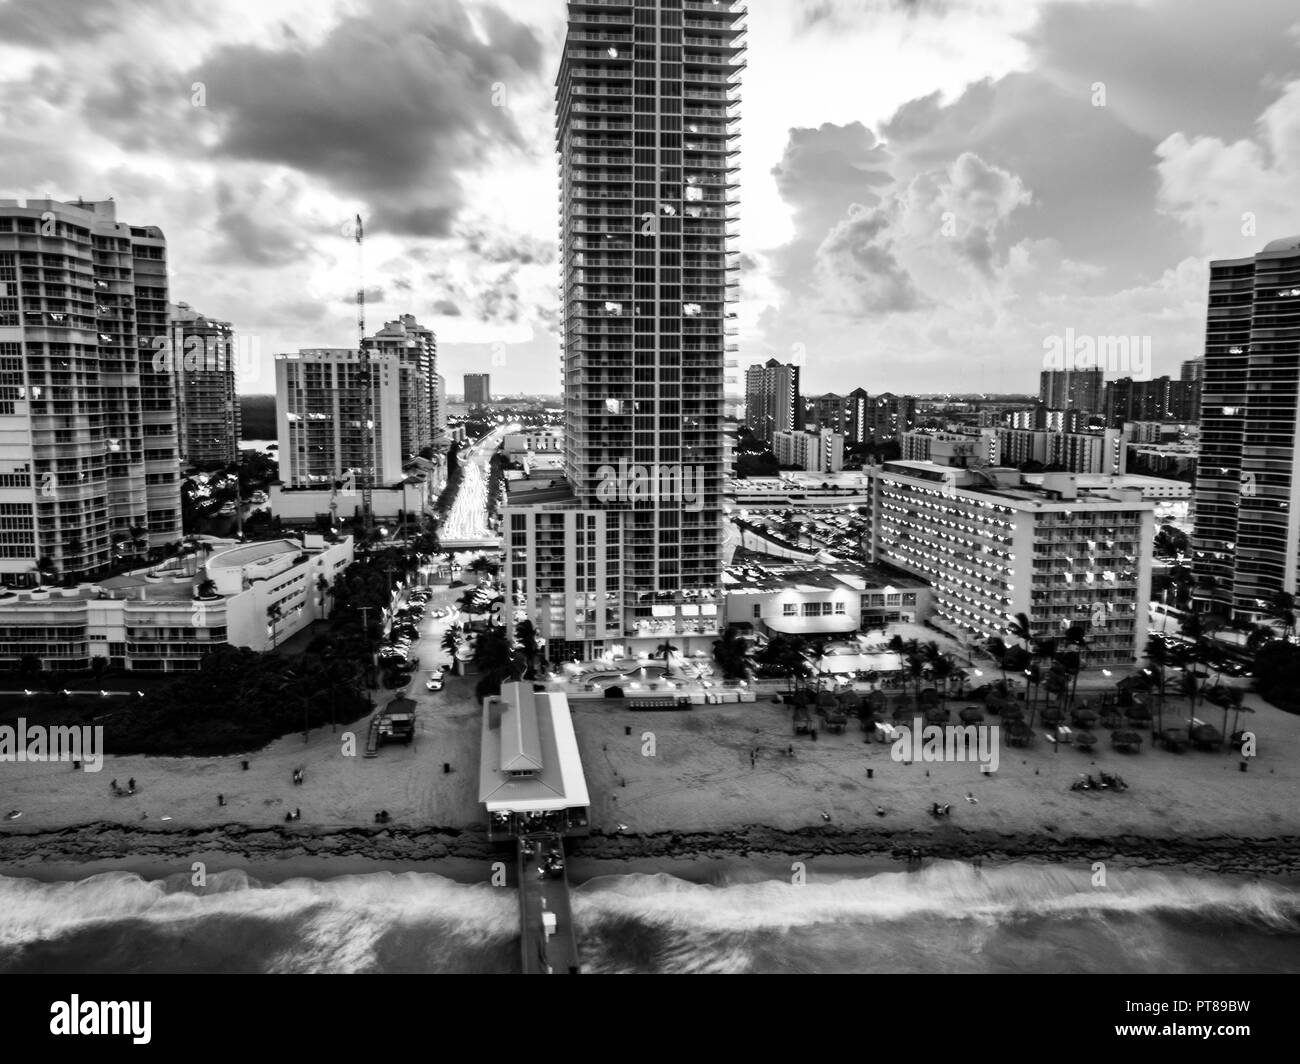 Aerial view of the Miami, Florida, USA as seen from the sea. In Black and White - Stock Image